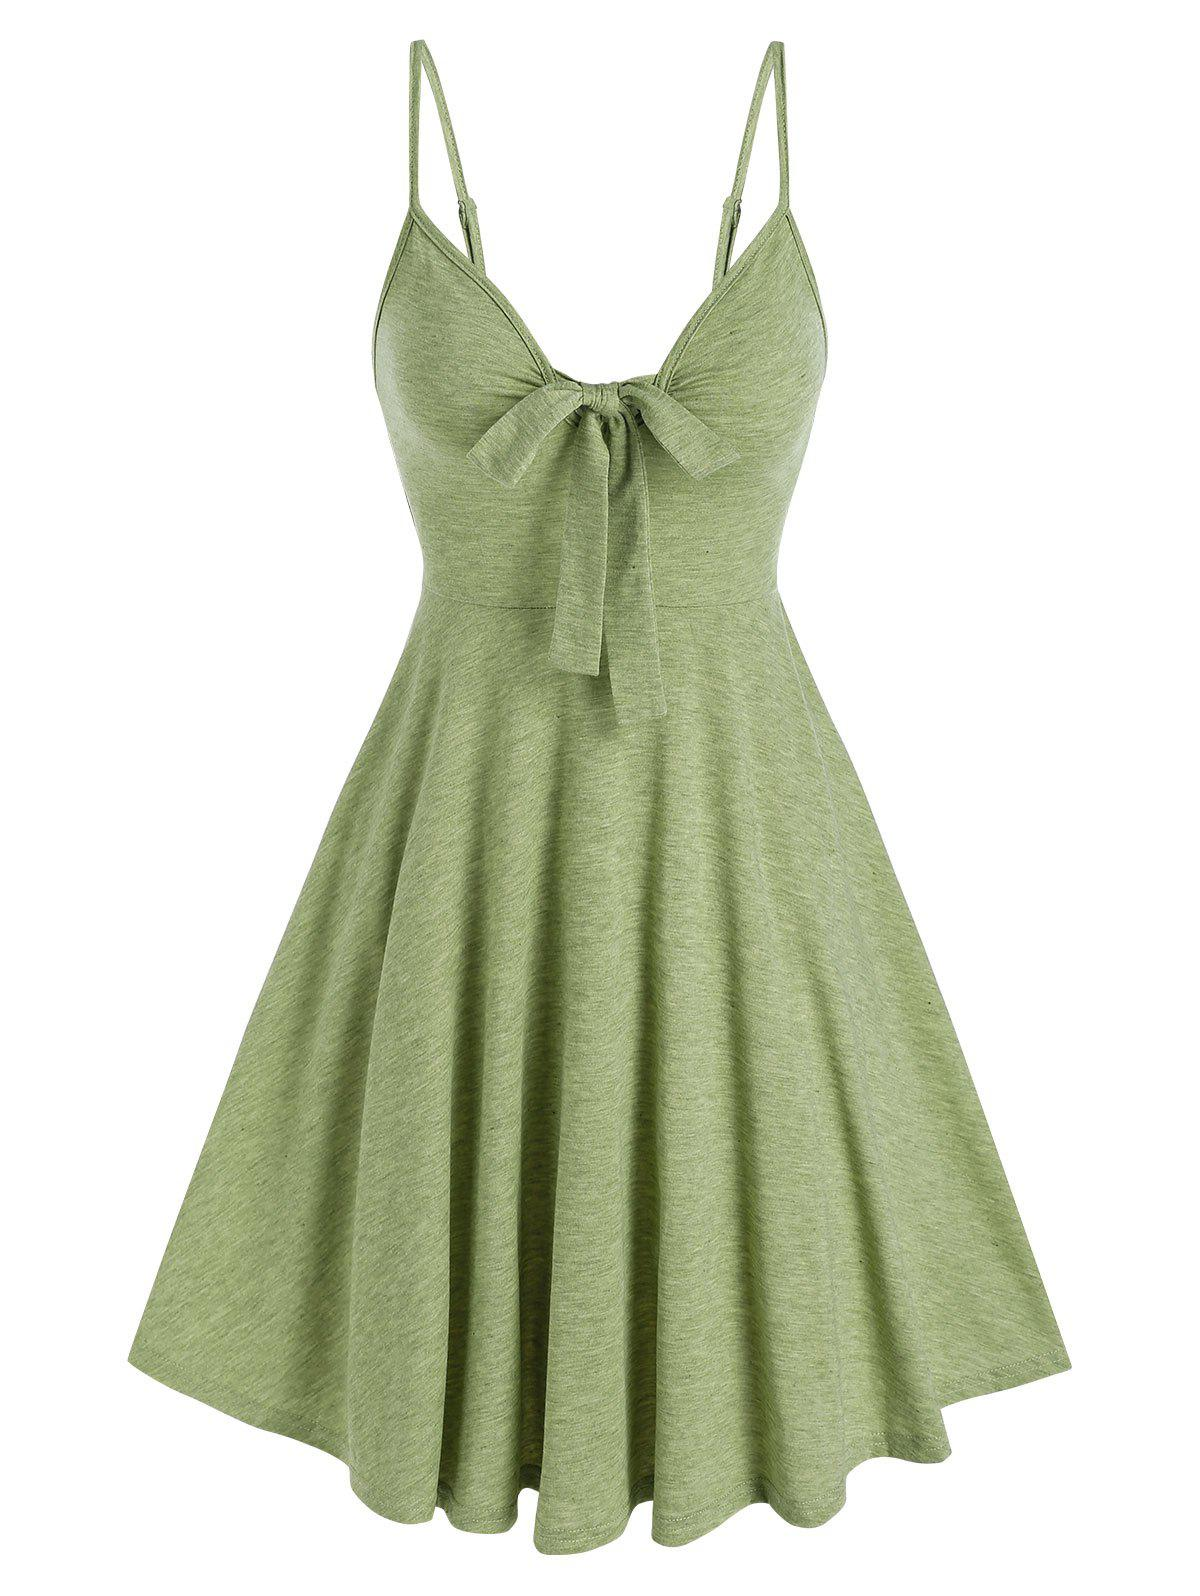 Casual Front Bowknot Flare SLIP DRESS - LIGHT GREEN M